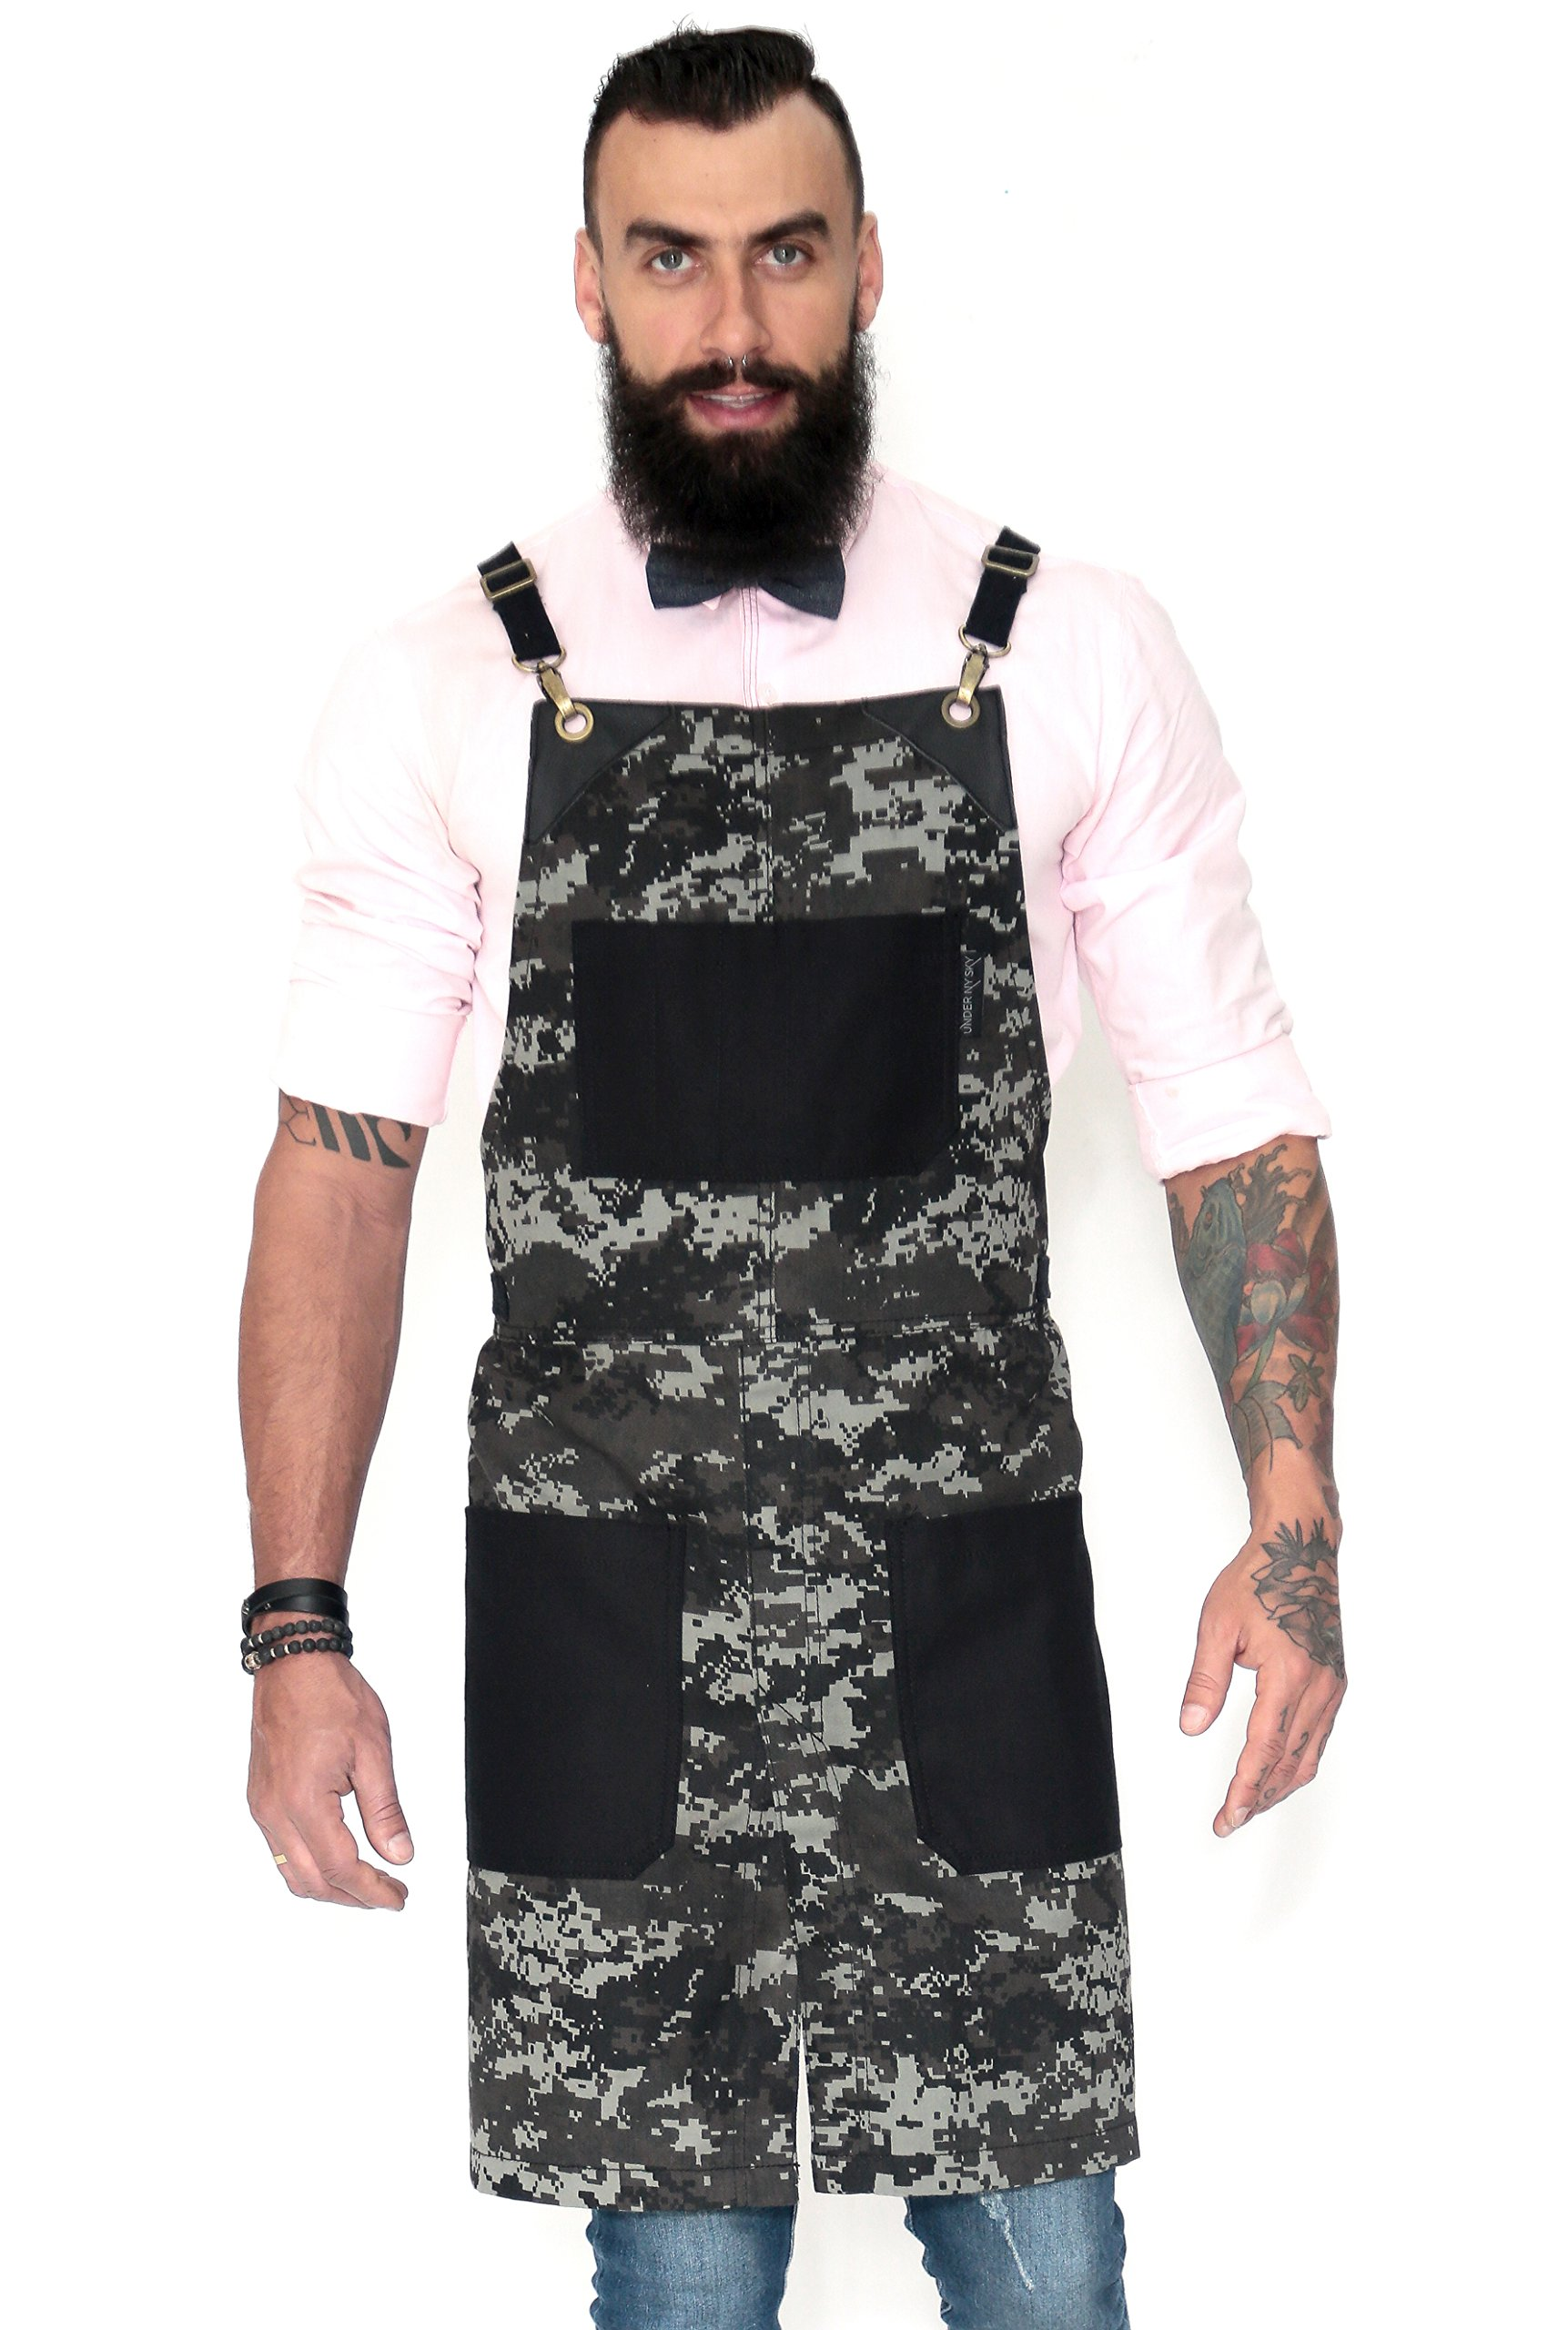 Under NY Sky Cross-Back Apron - Night Camo Twill - Split-Leg - Black Leather